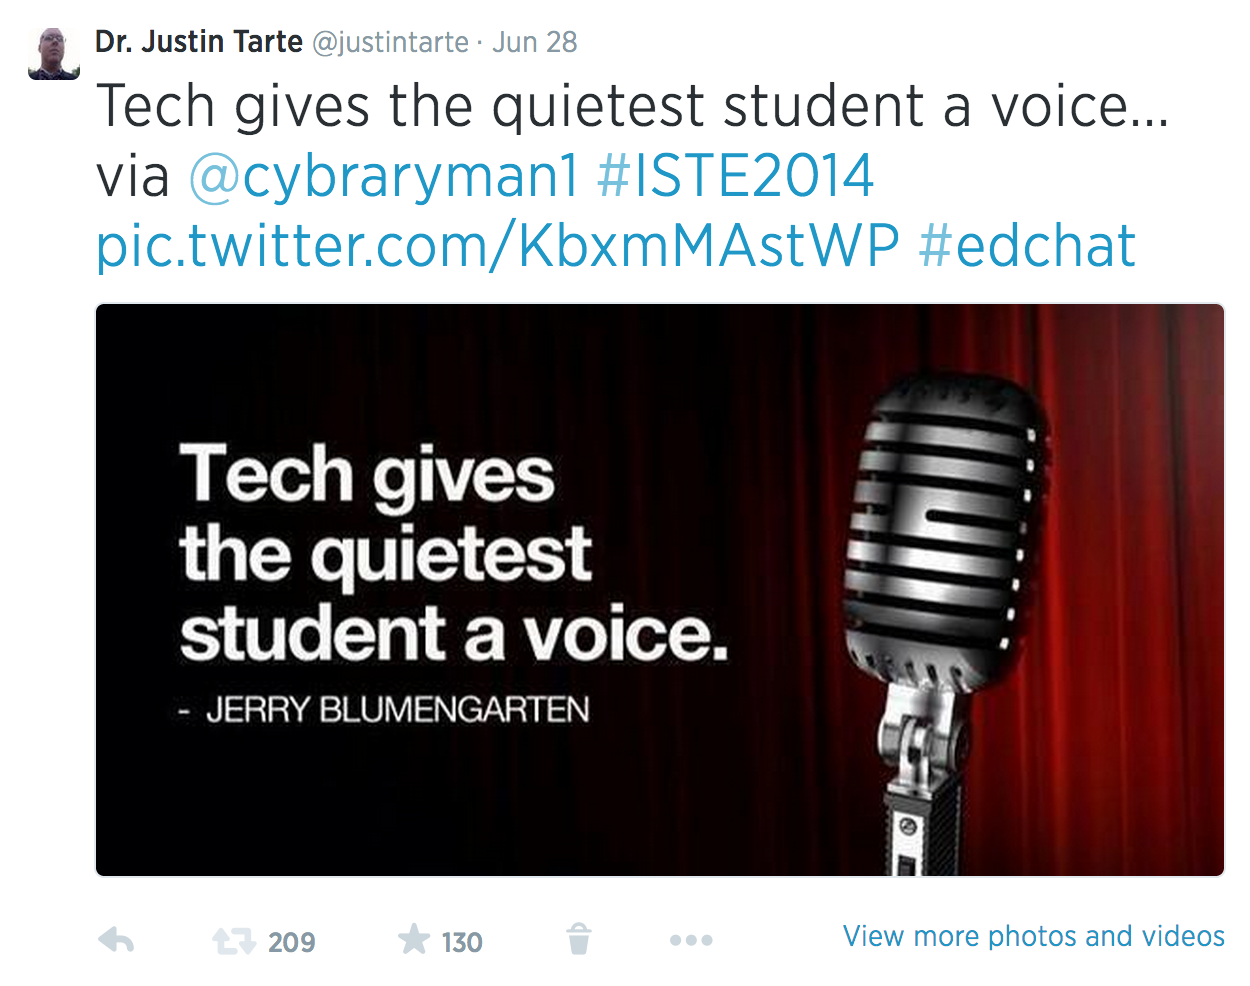 20 thoughts from #iste2014